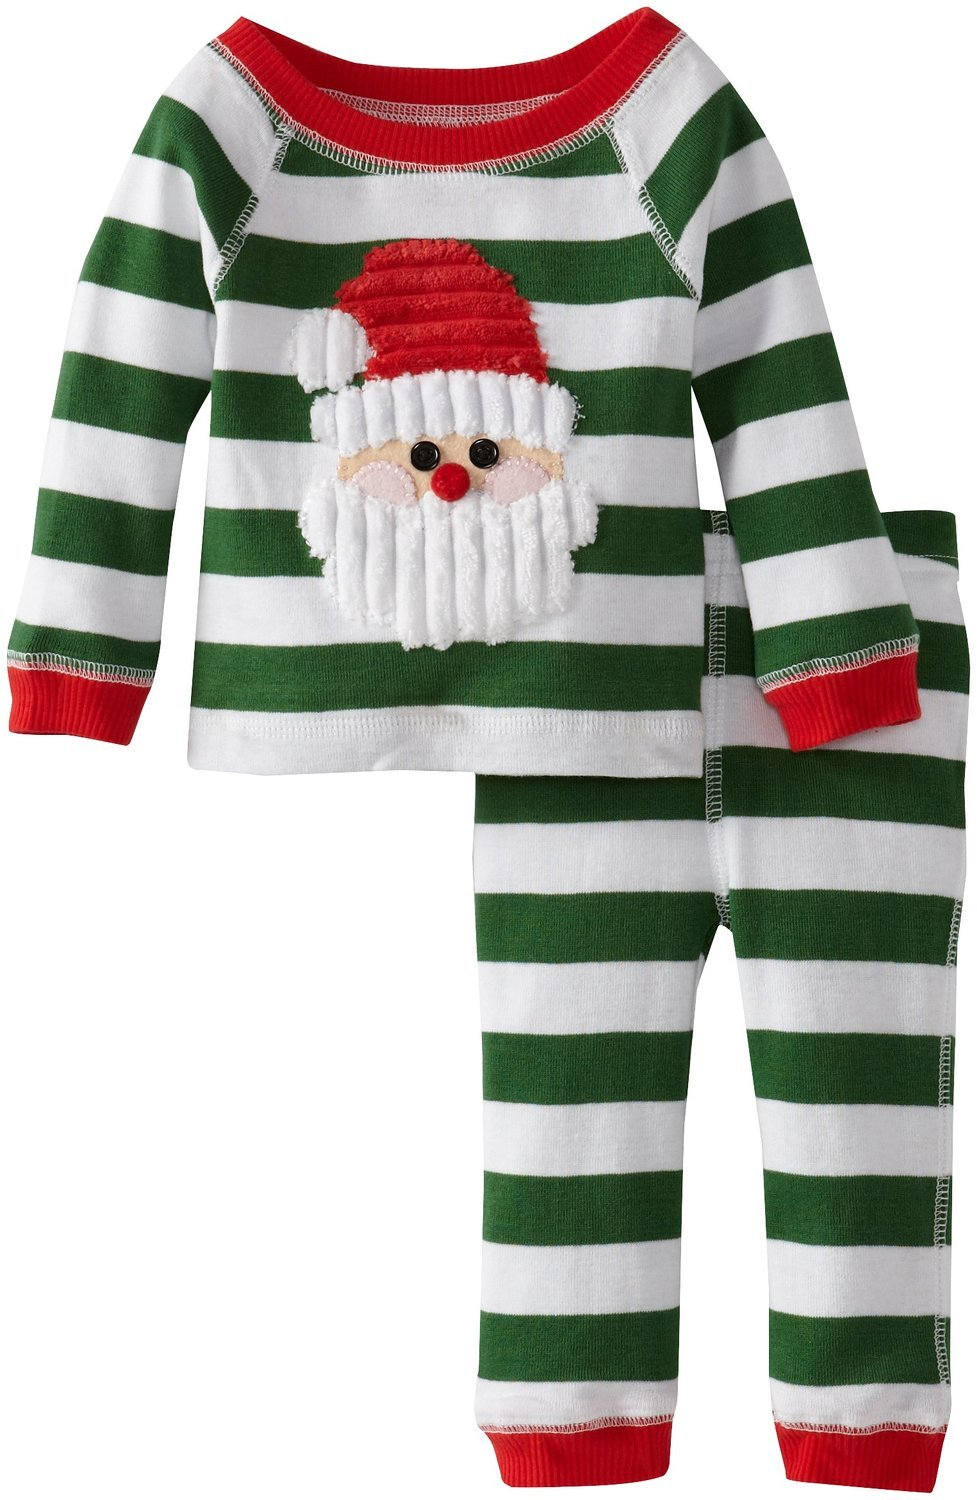 Amazon.com  Green Stripes Santa Lounge Set Mud Pie Infant or Toddler  Christmas Pajamas 12-18 months  Baby 893f403eb